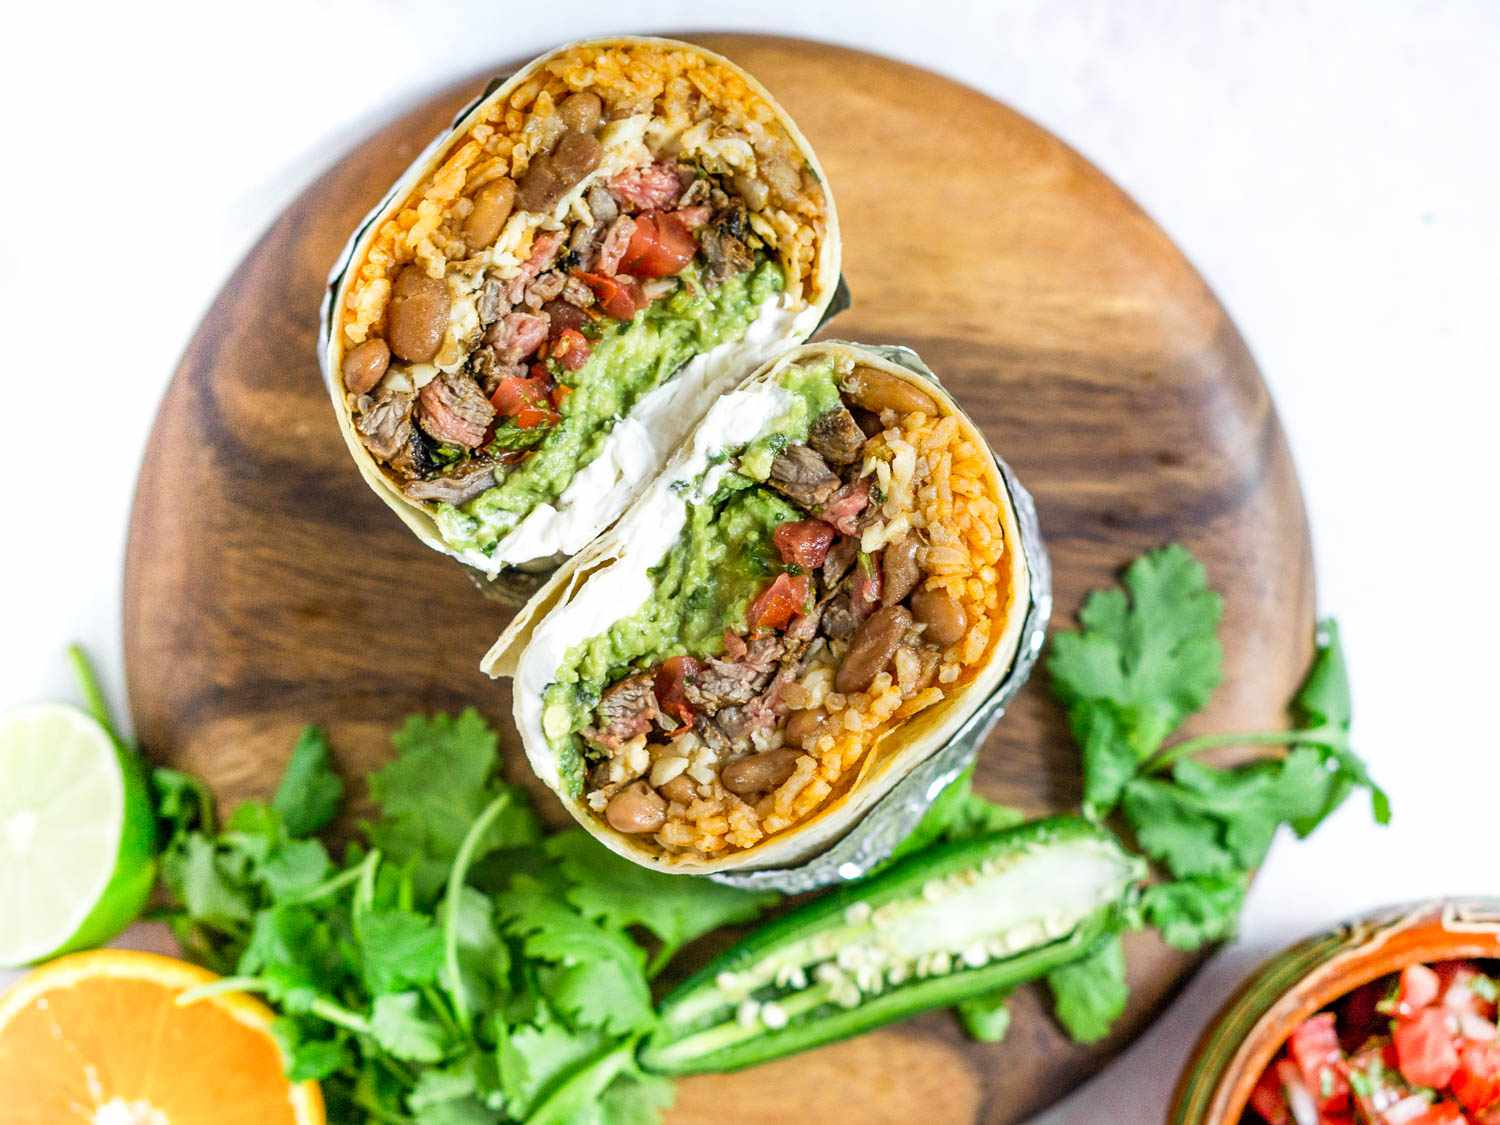 A cross section of a Mission burrito on a cutting board